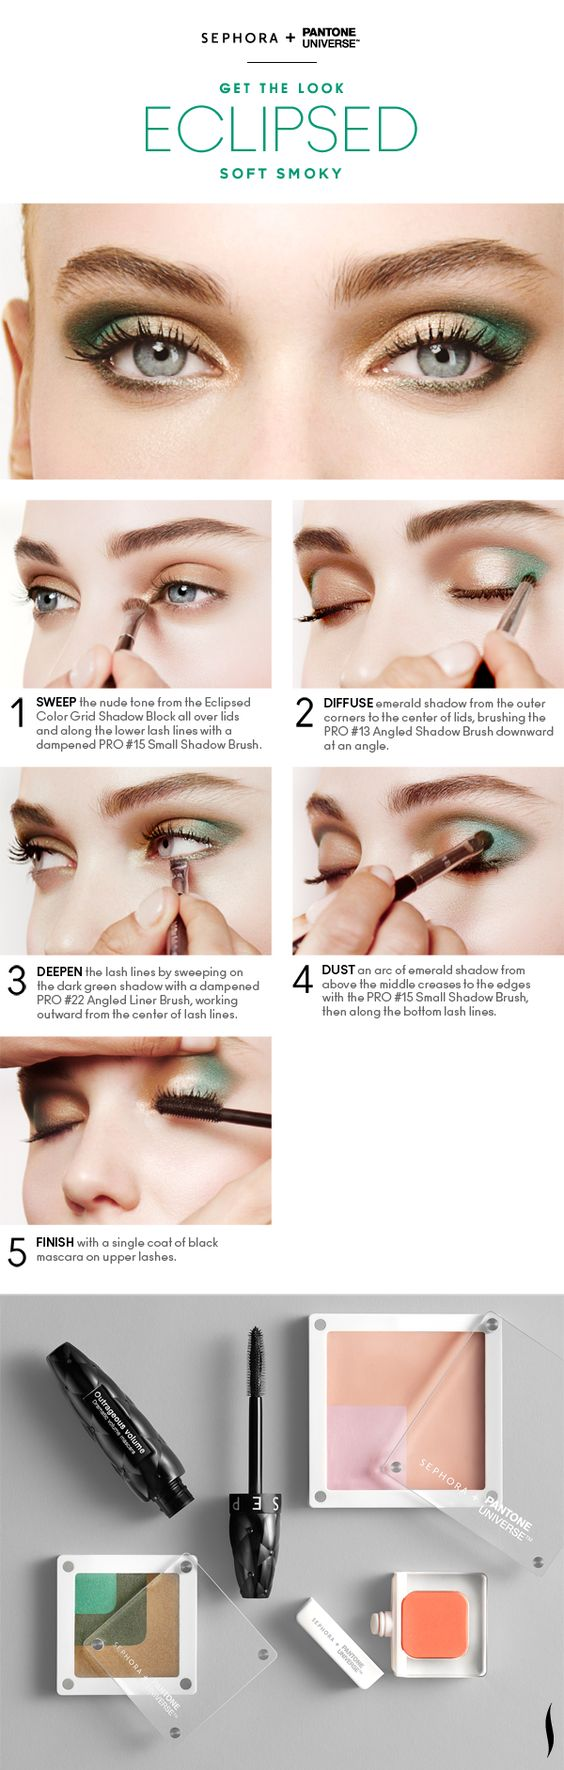 Get the Look: Bionic Soft Smoky Eyes HOW TO #Sephora #Emerald #ColoroftheYear @PANTONE COLOR